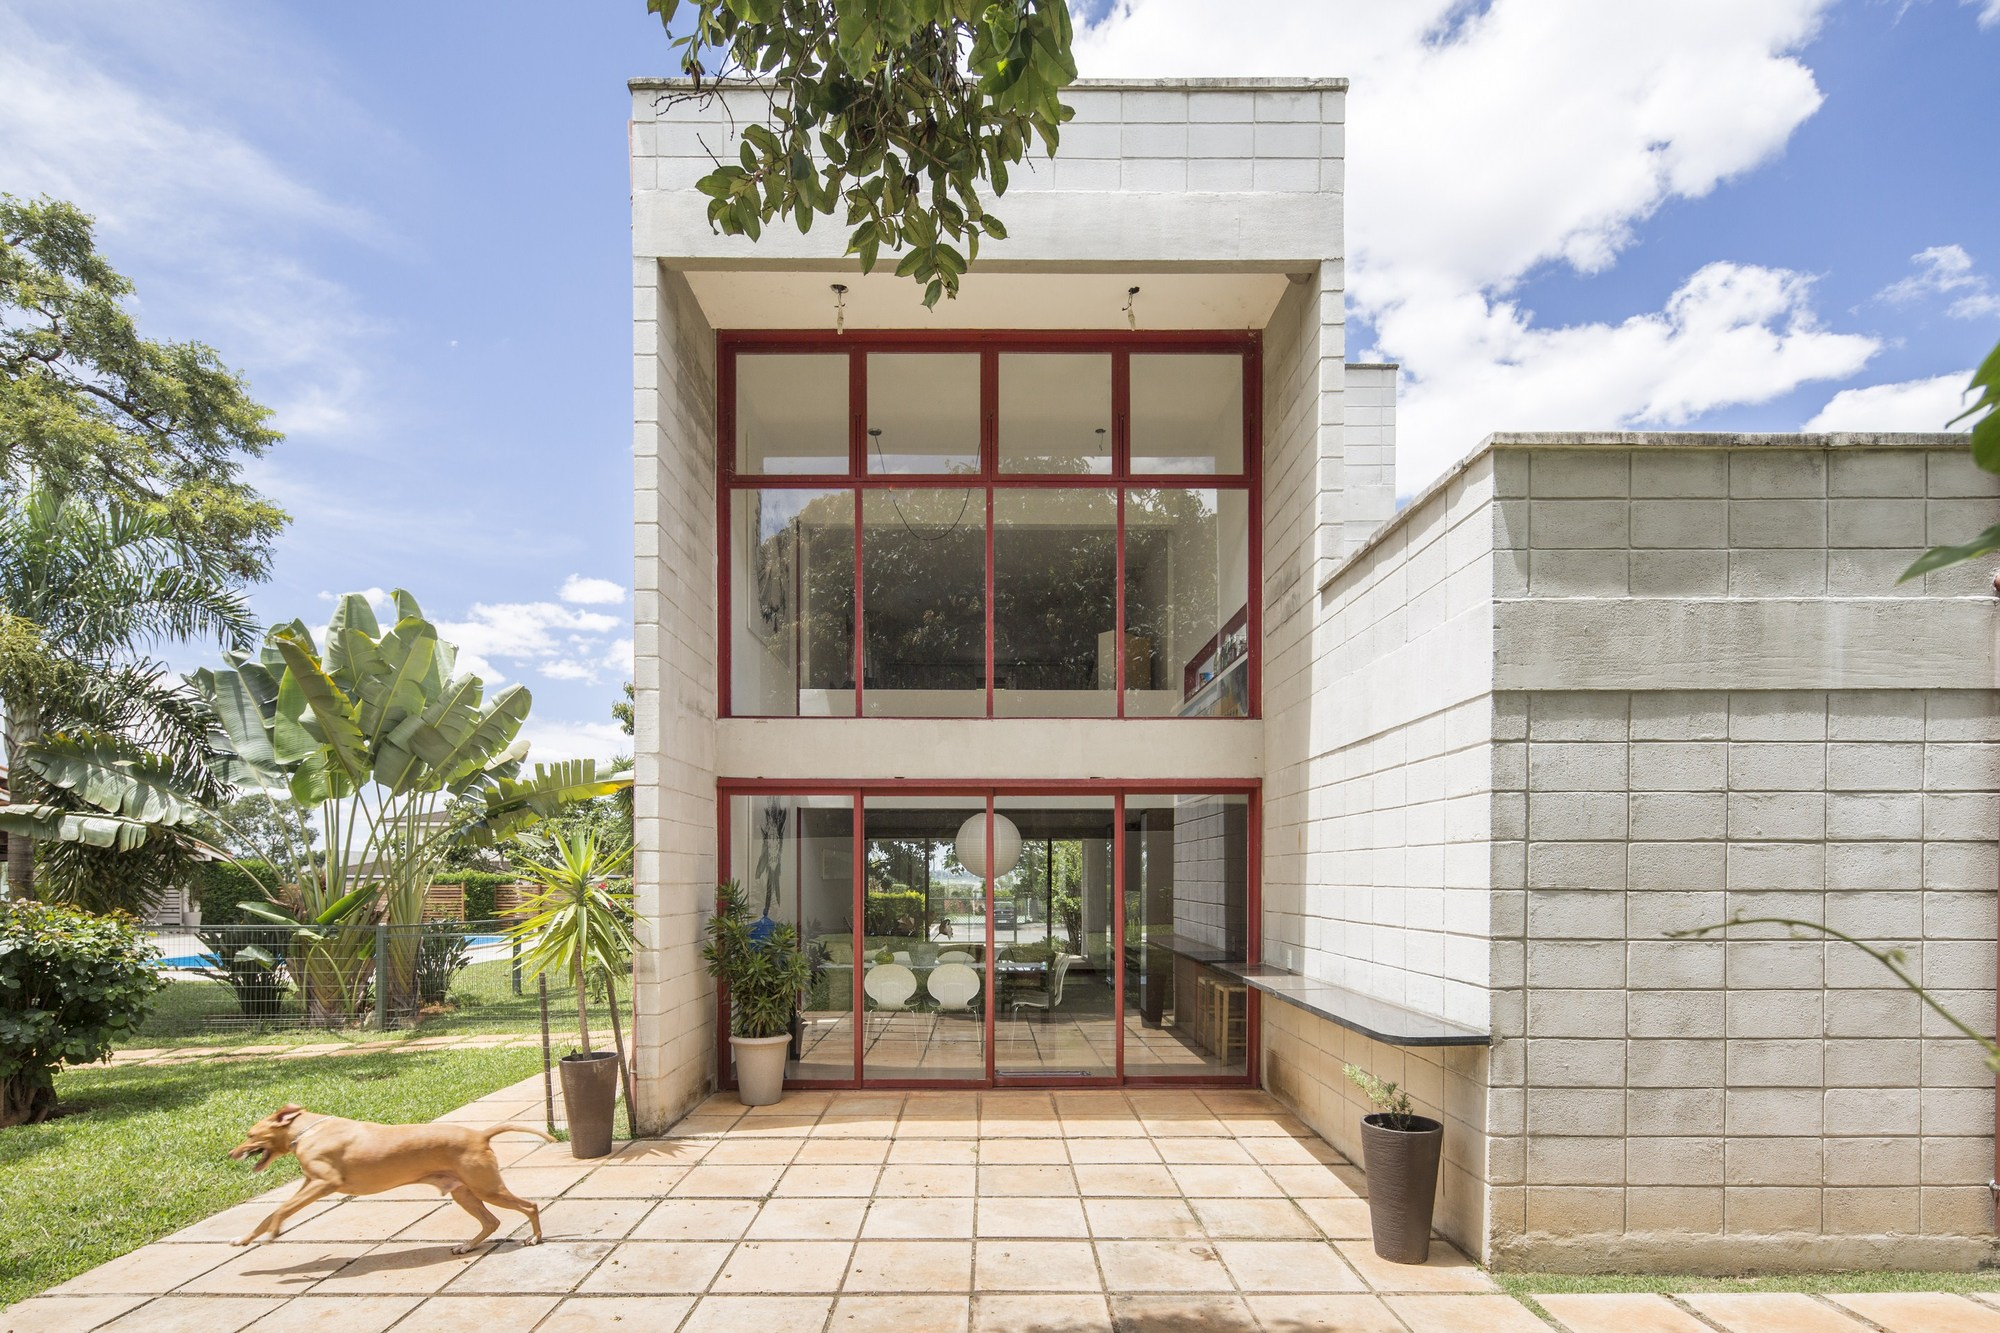 Casa smpw lab606 archdaily brasil for Casa container costo